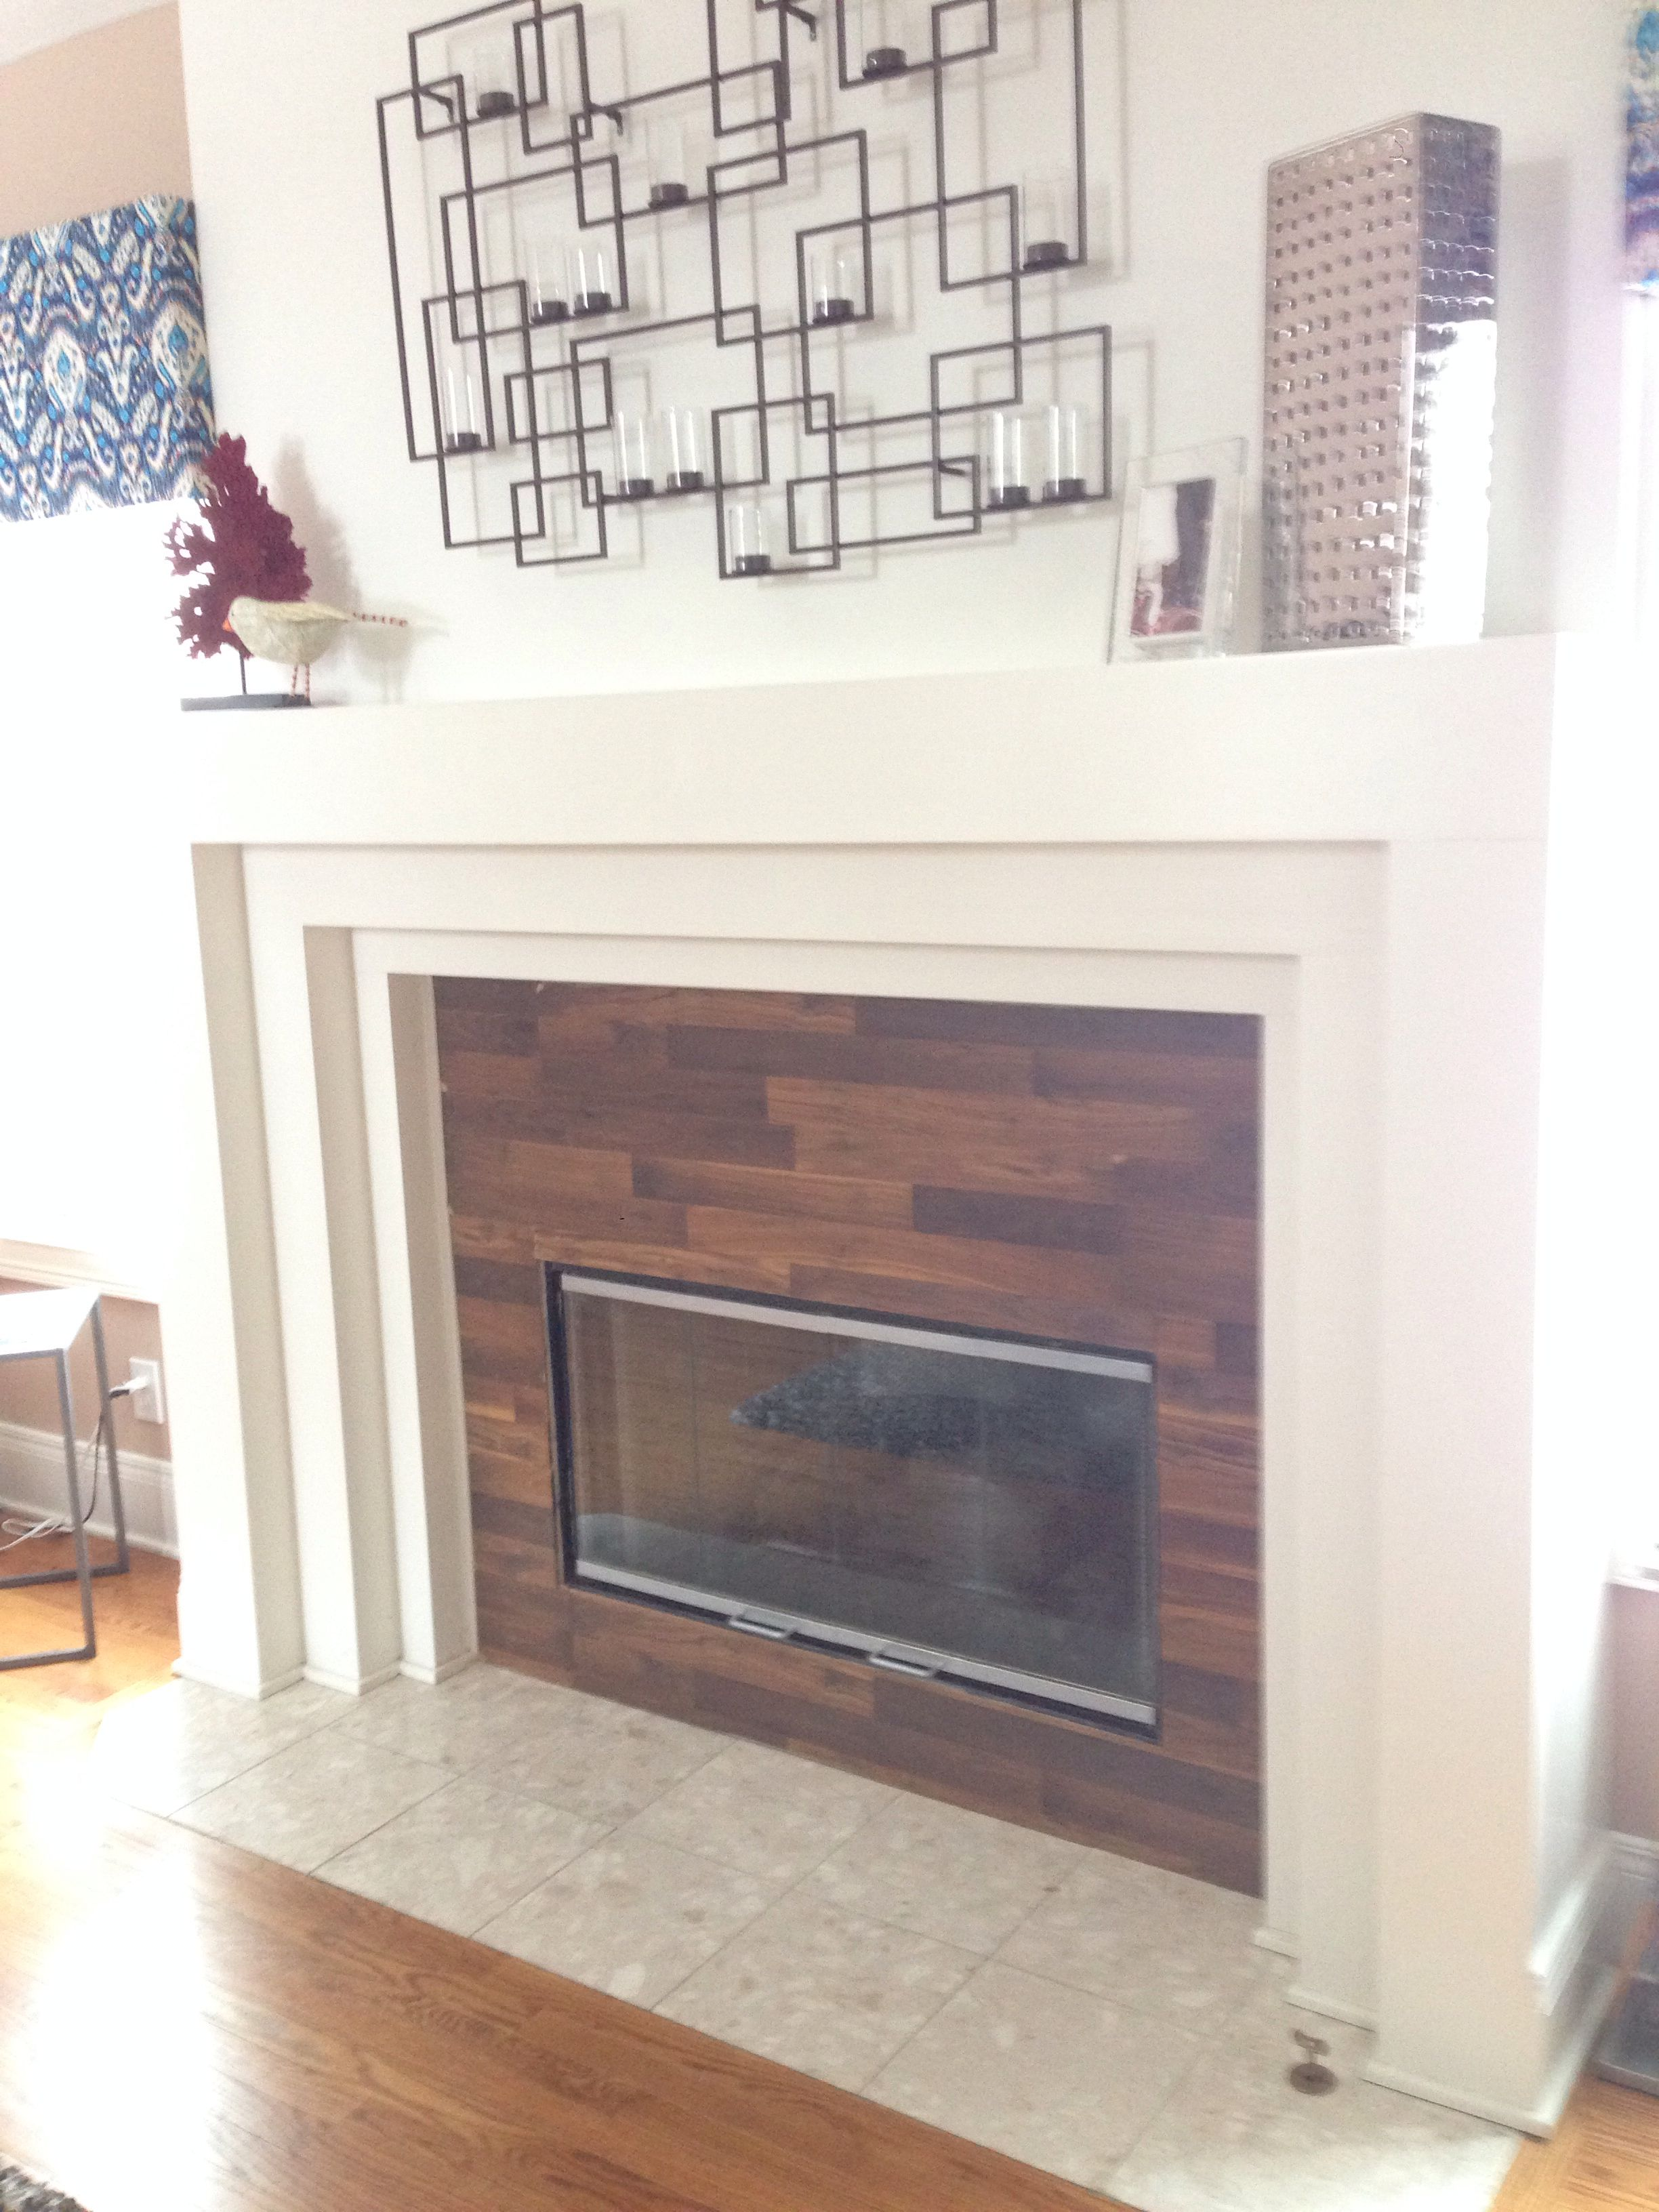 Created a reclaimed wood look around the fireplace with